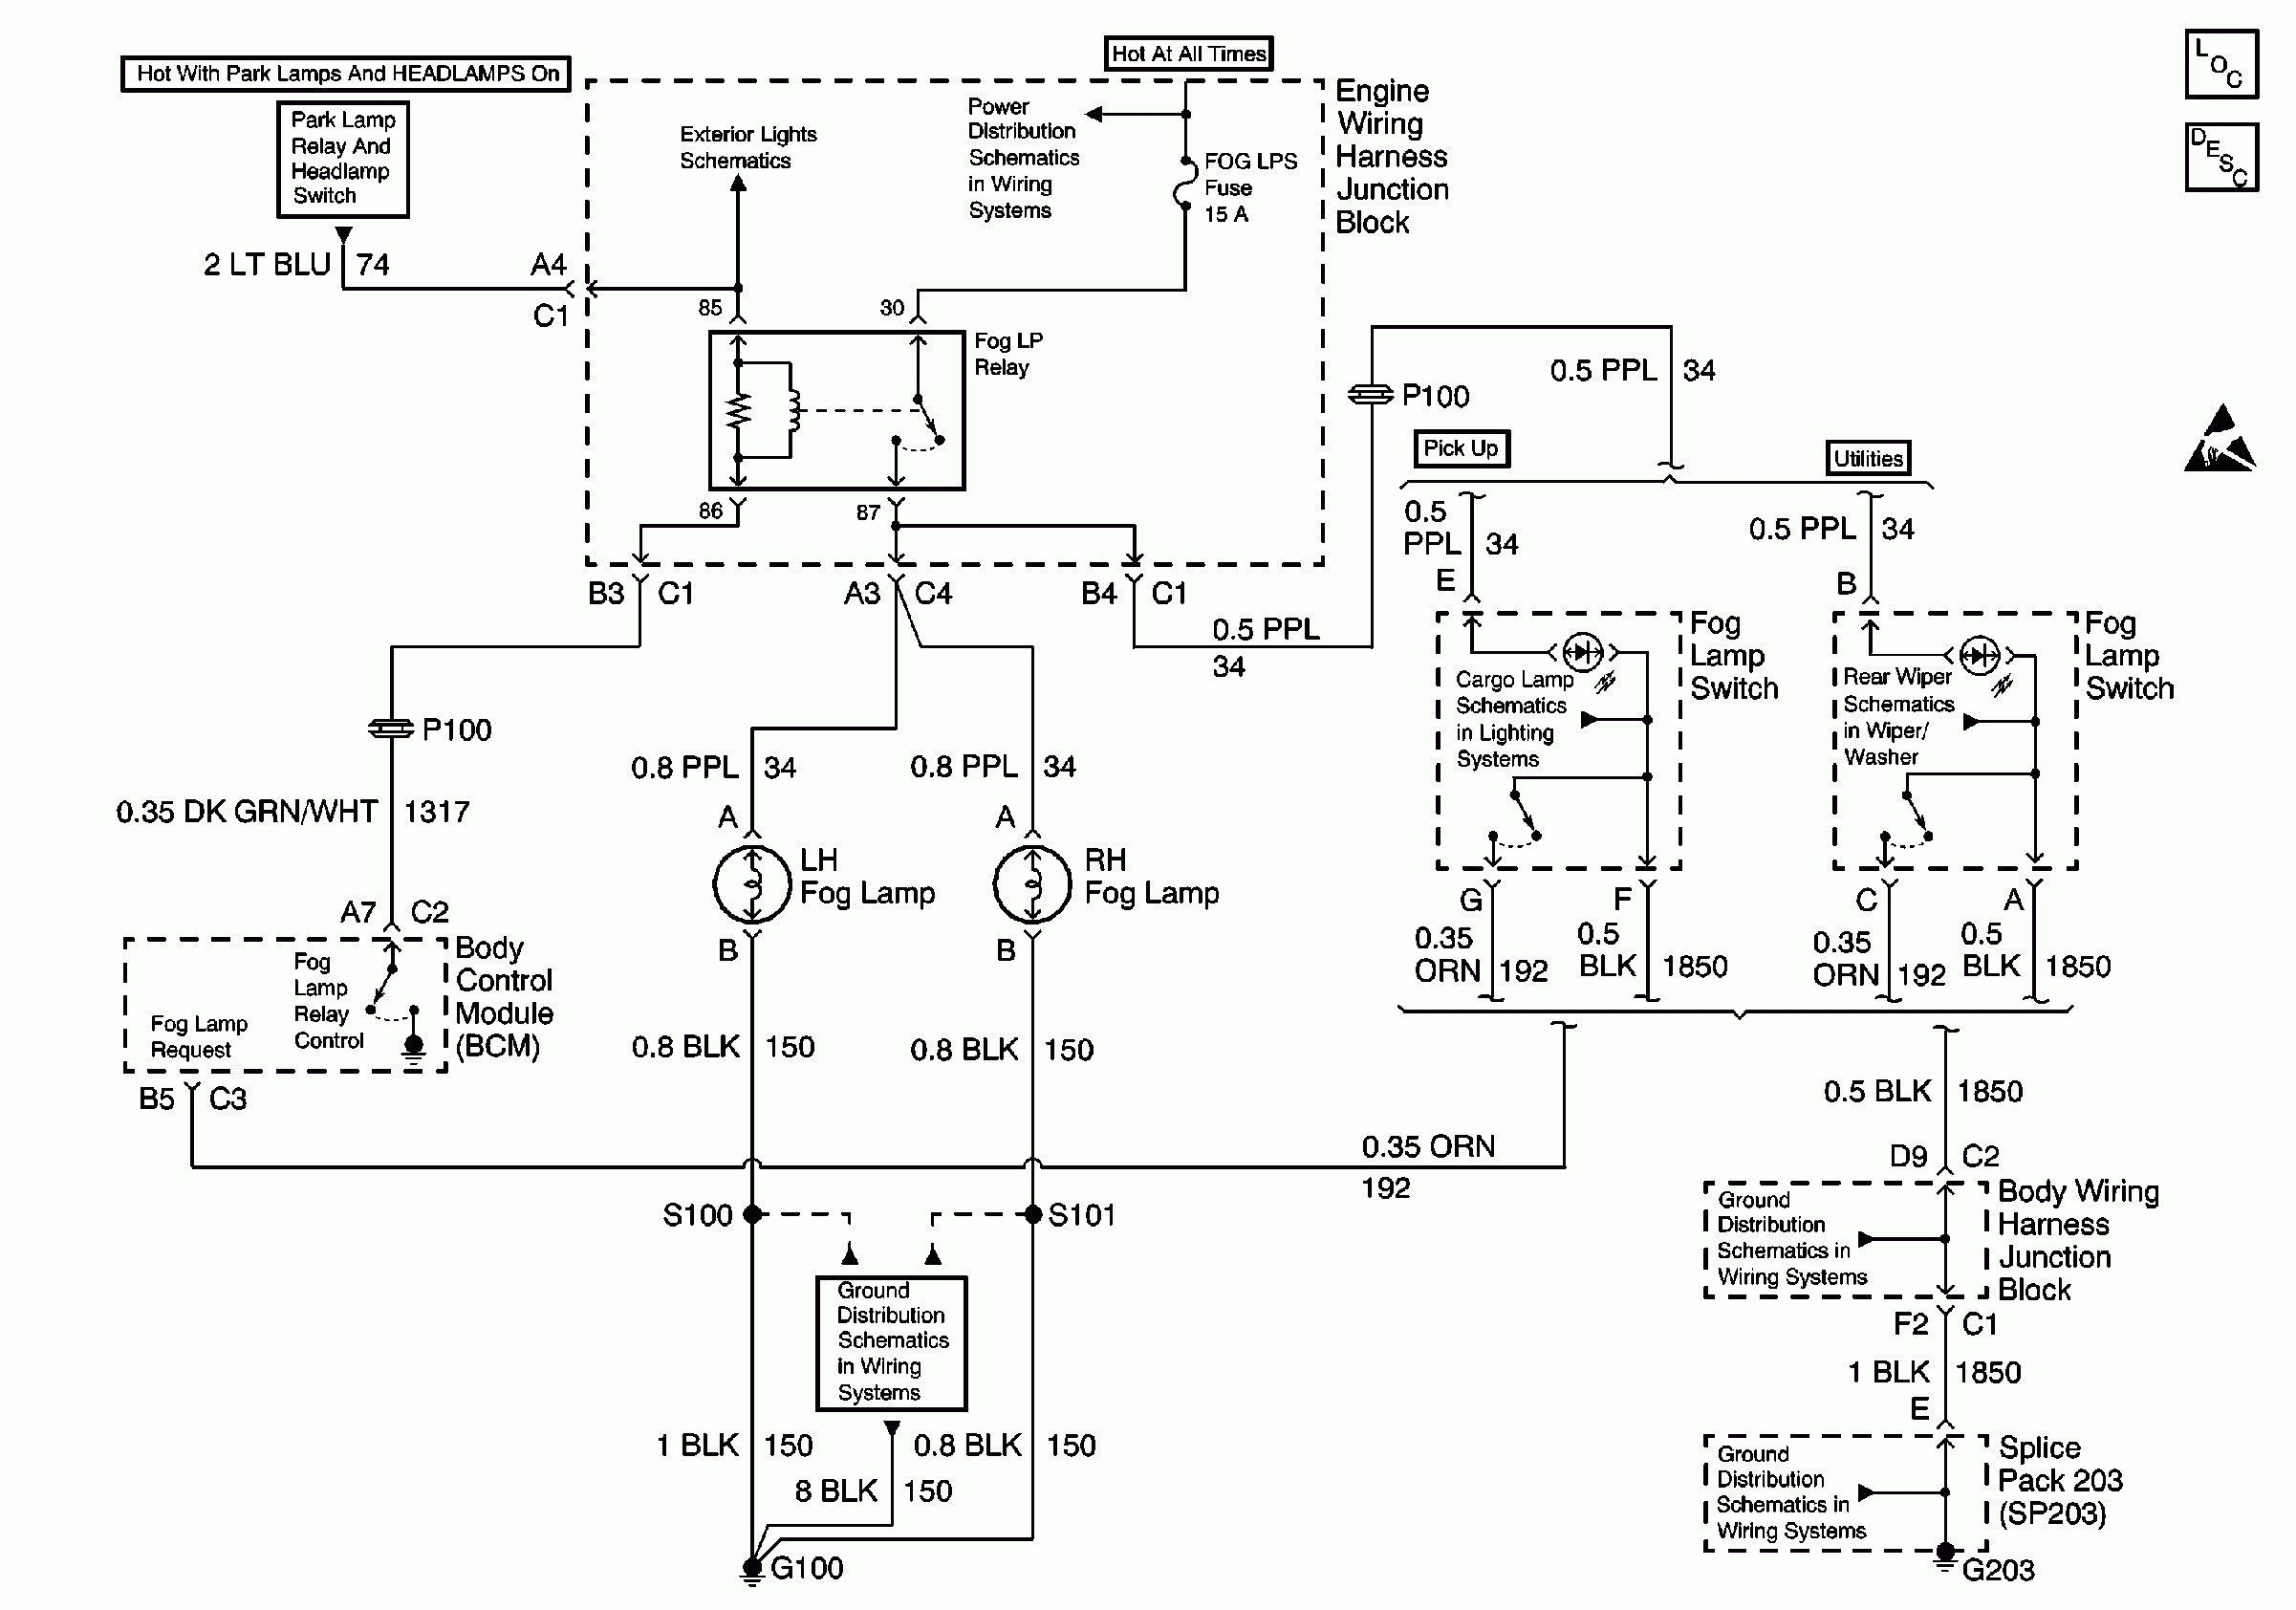 Awesome Wiring Diagram For Neon Lights  Diagrams  Digramssample  Diagramimages